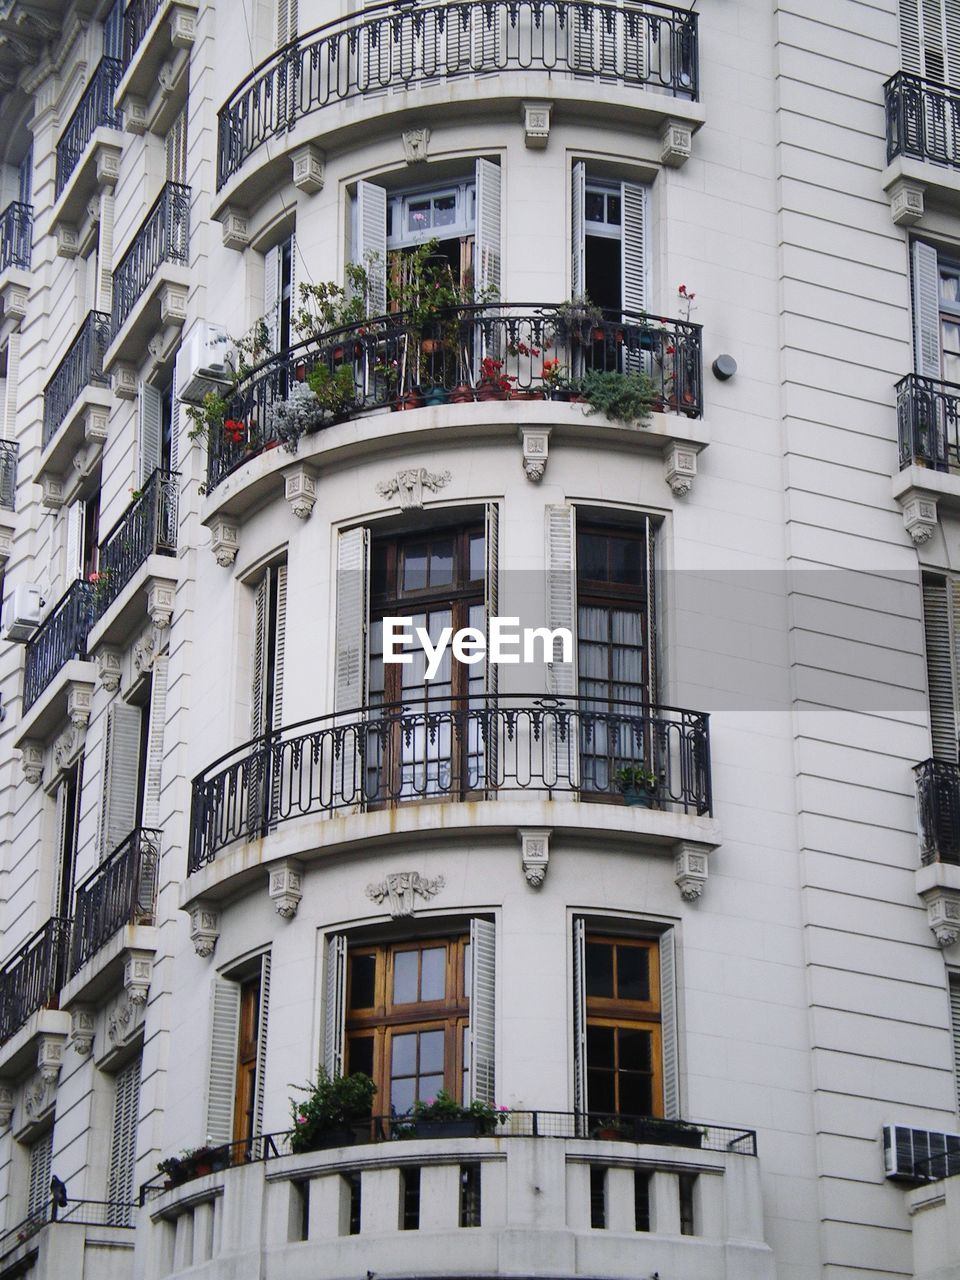 building exterior, architecture, built structure, window, building, residential district, balcony, city, low angle view, no people, day, outdoors, apartment, nature, plant, house, glass - material, side by side, city life, arch, window box